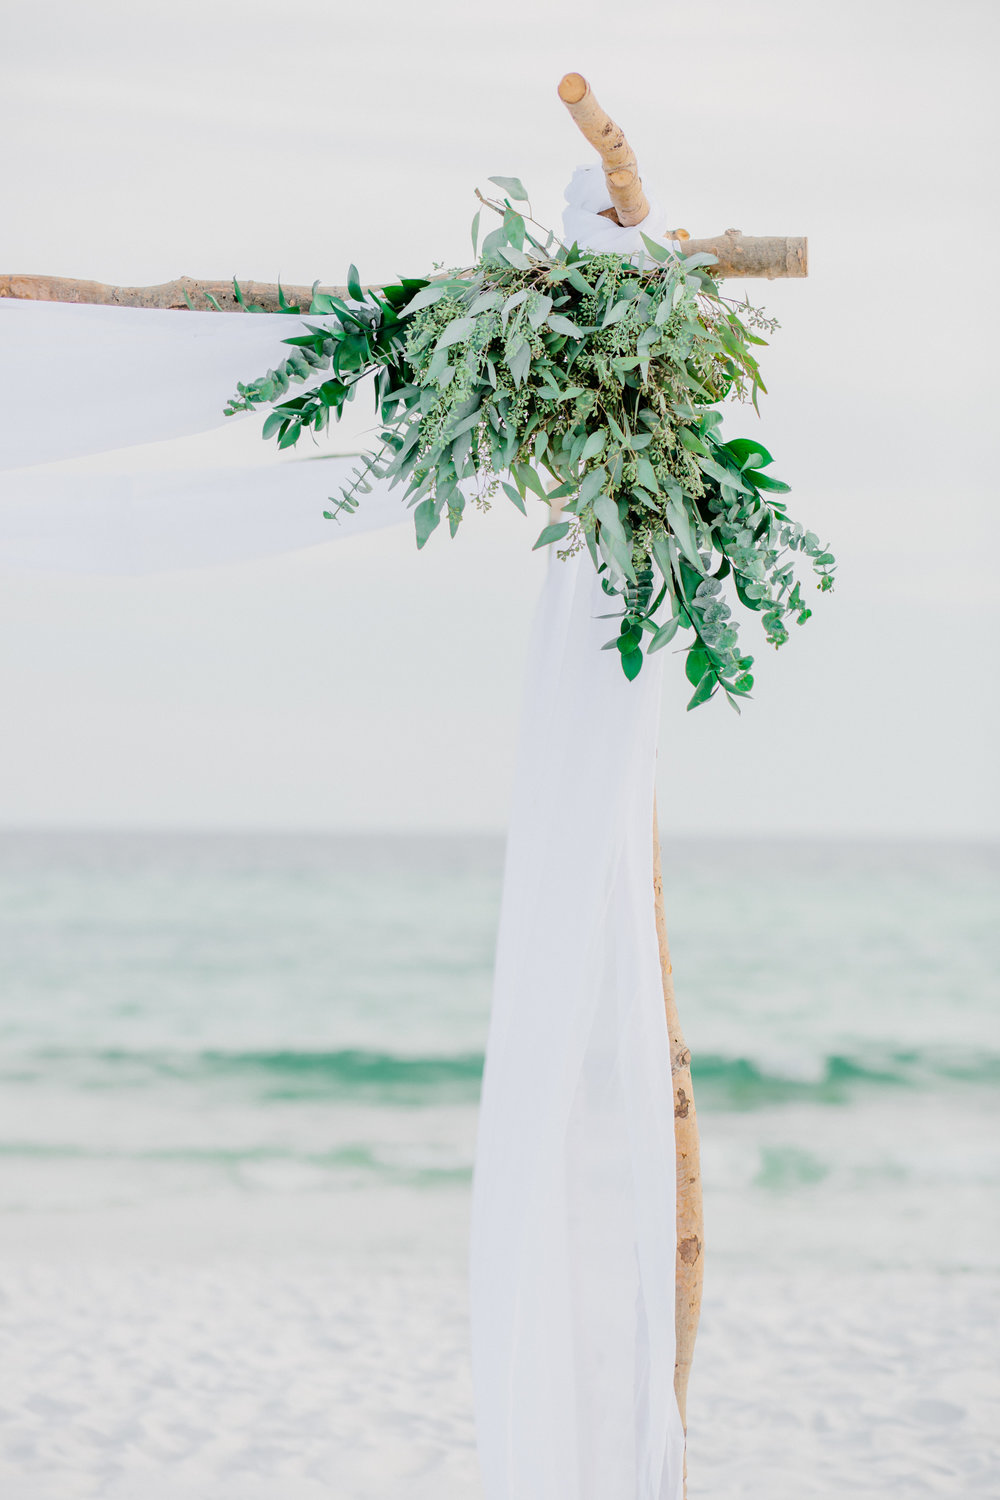 watercolor florida wedding photographer